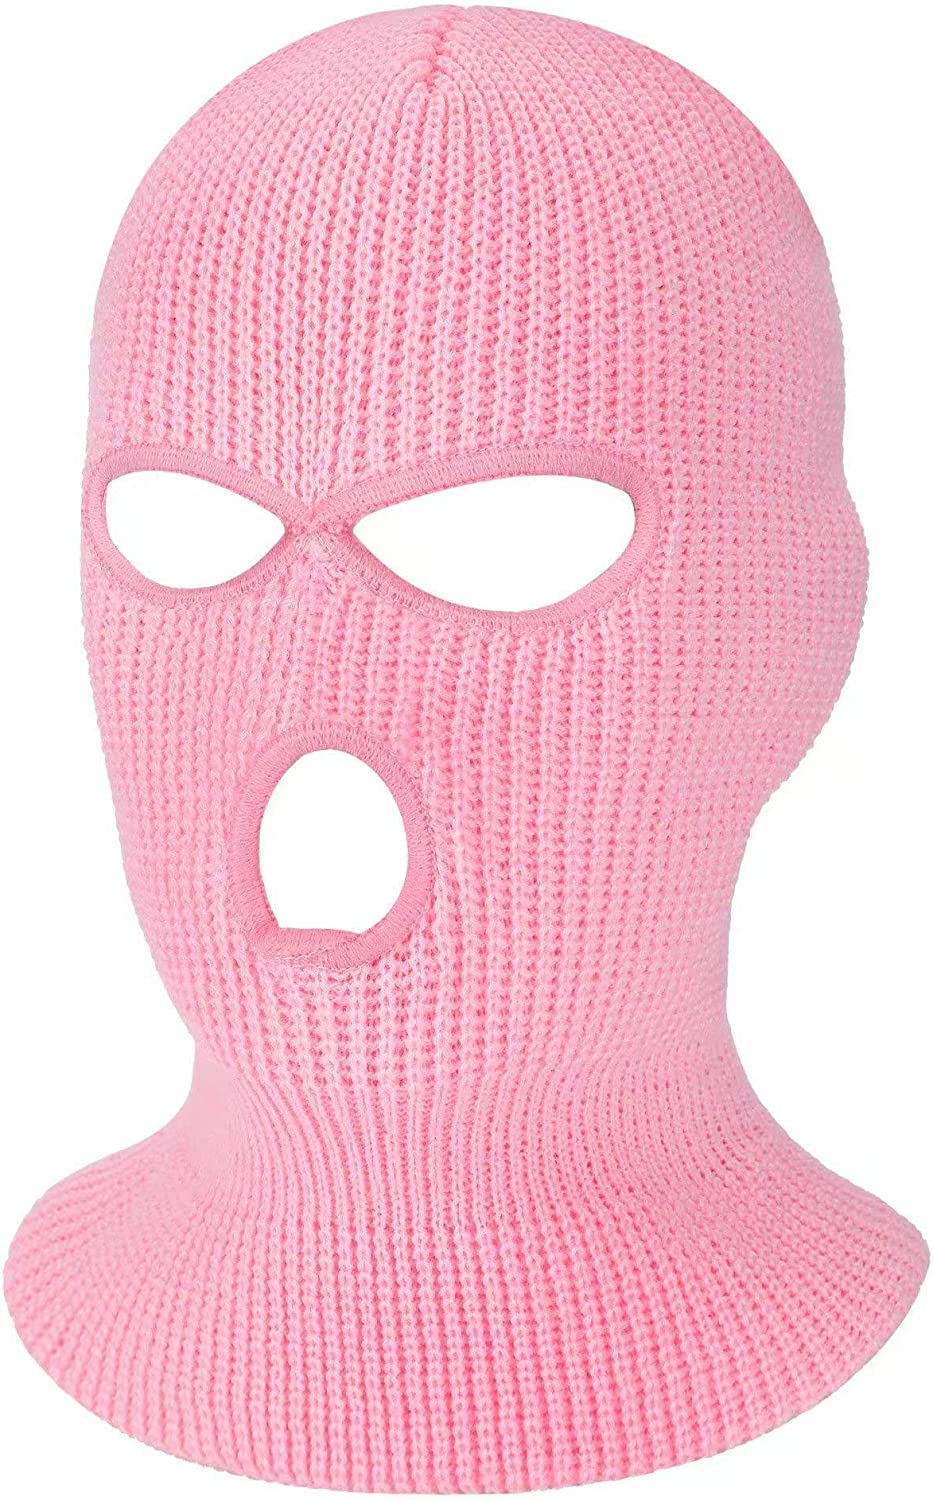 3-Hole Memphis Mall Beanie Face Mask Knit-Men Ski-Warm Women Branded goods and